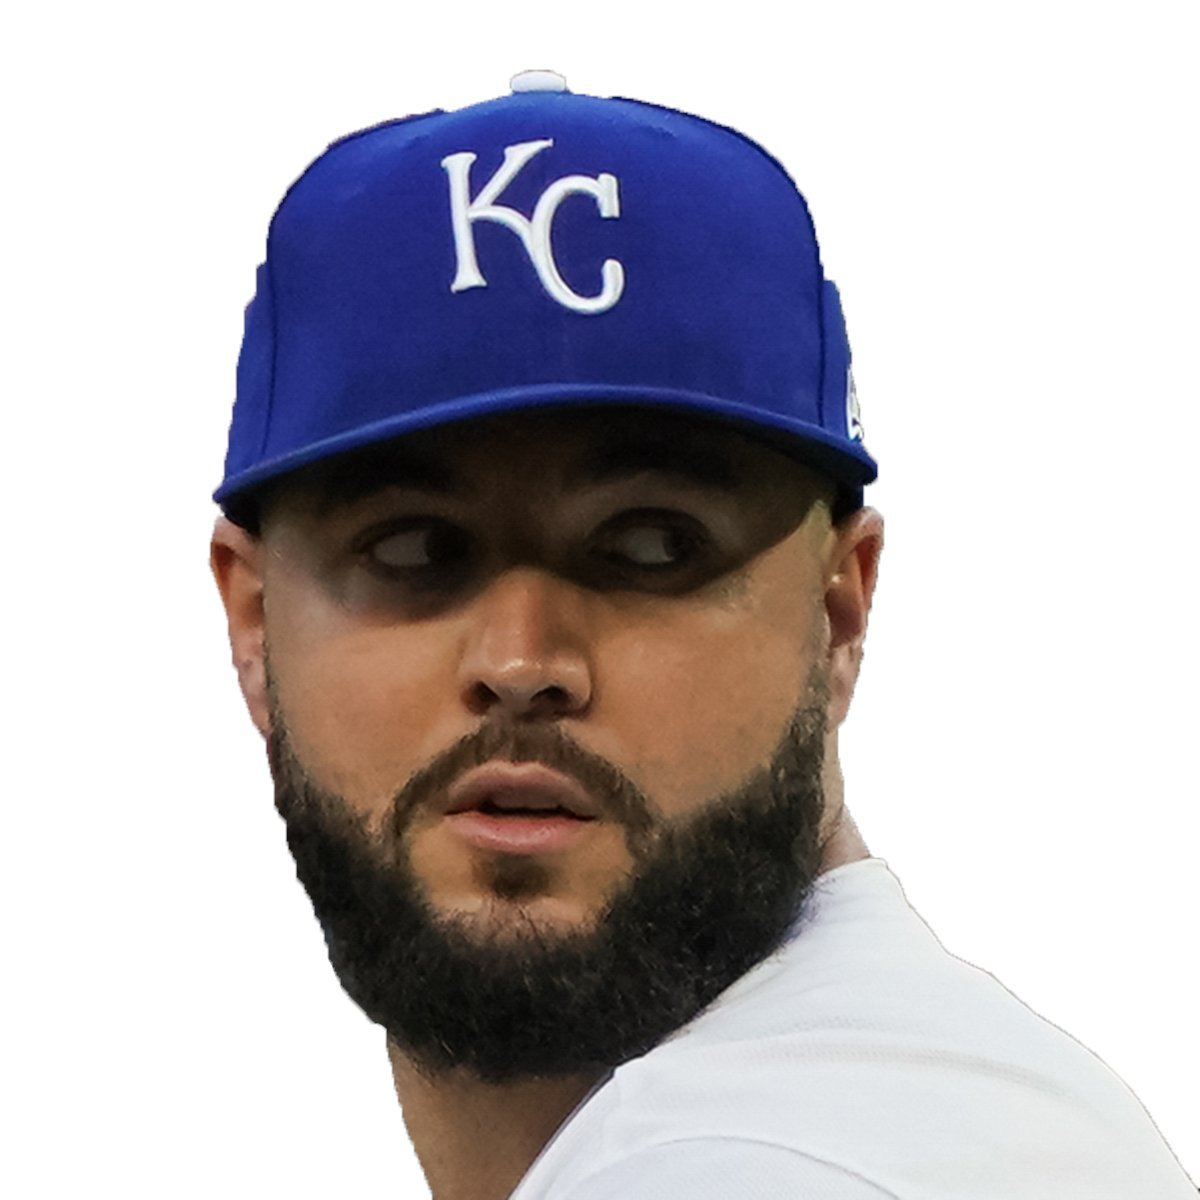 SB Nation pays what Im sure is a lot of money to have access to high-quality Getty Sports and USA Today images for its varying sites, just like this stunning work of photography and editing that is the first search result for Kansas City Royals